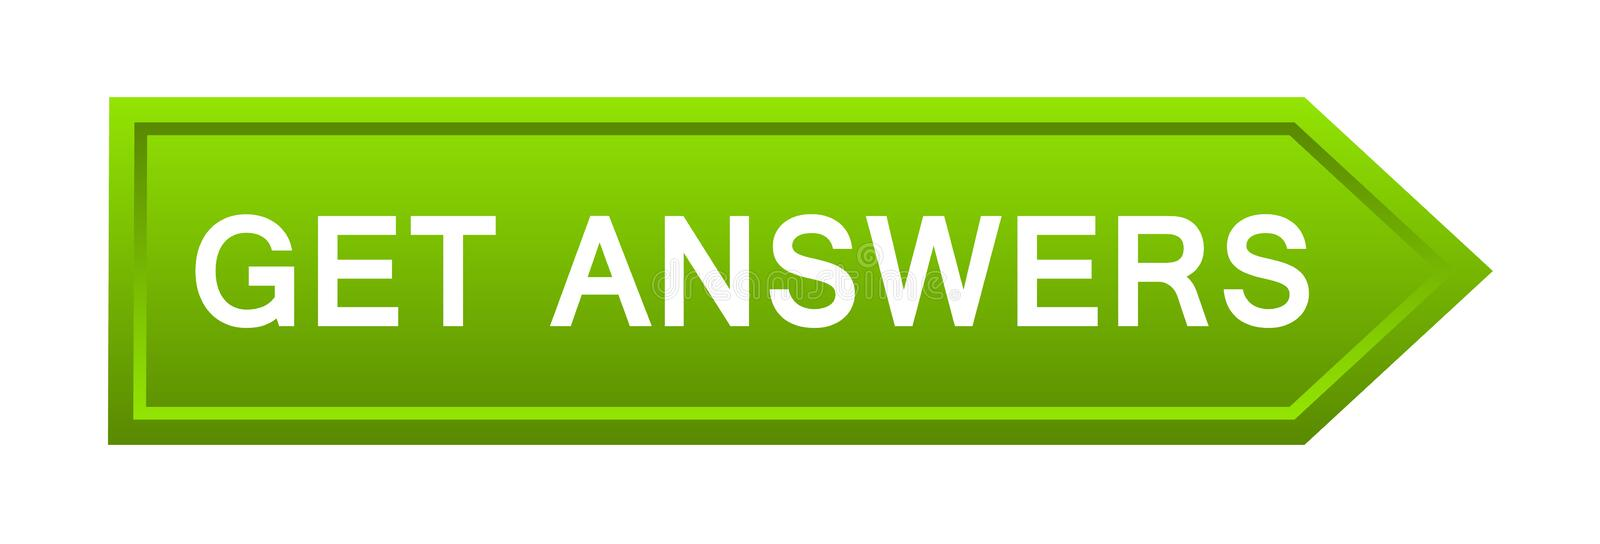 Get answers button stock photography